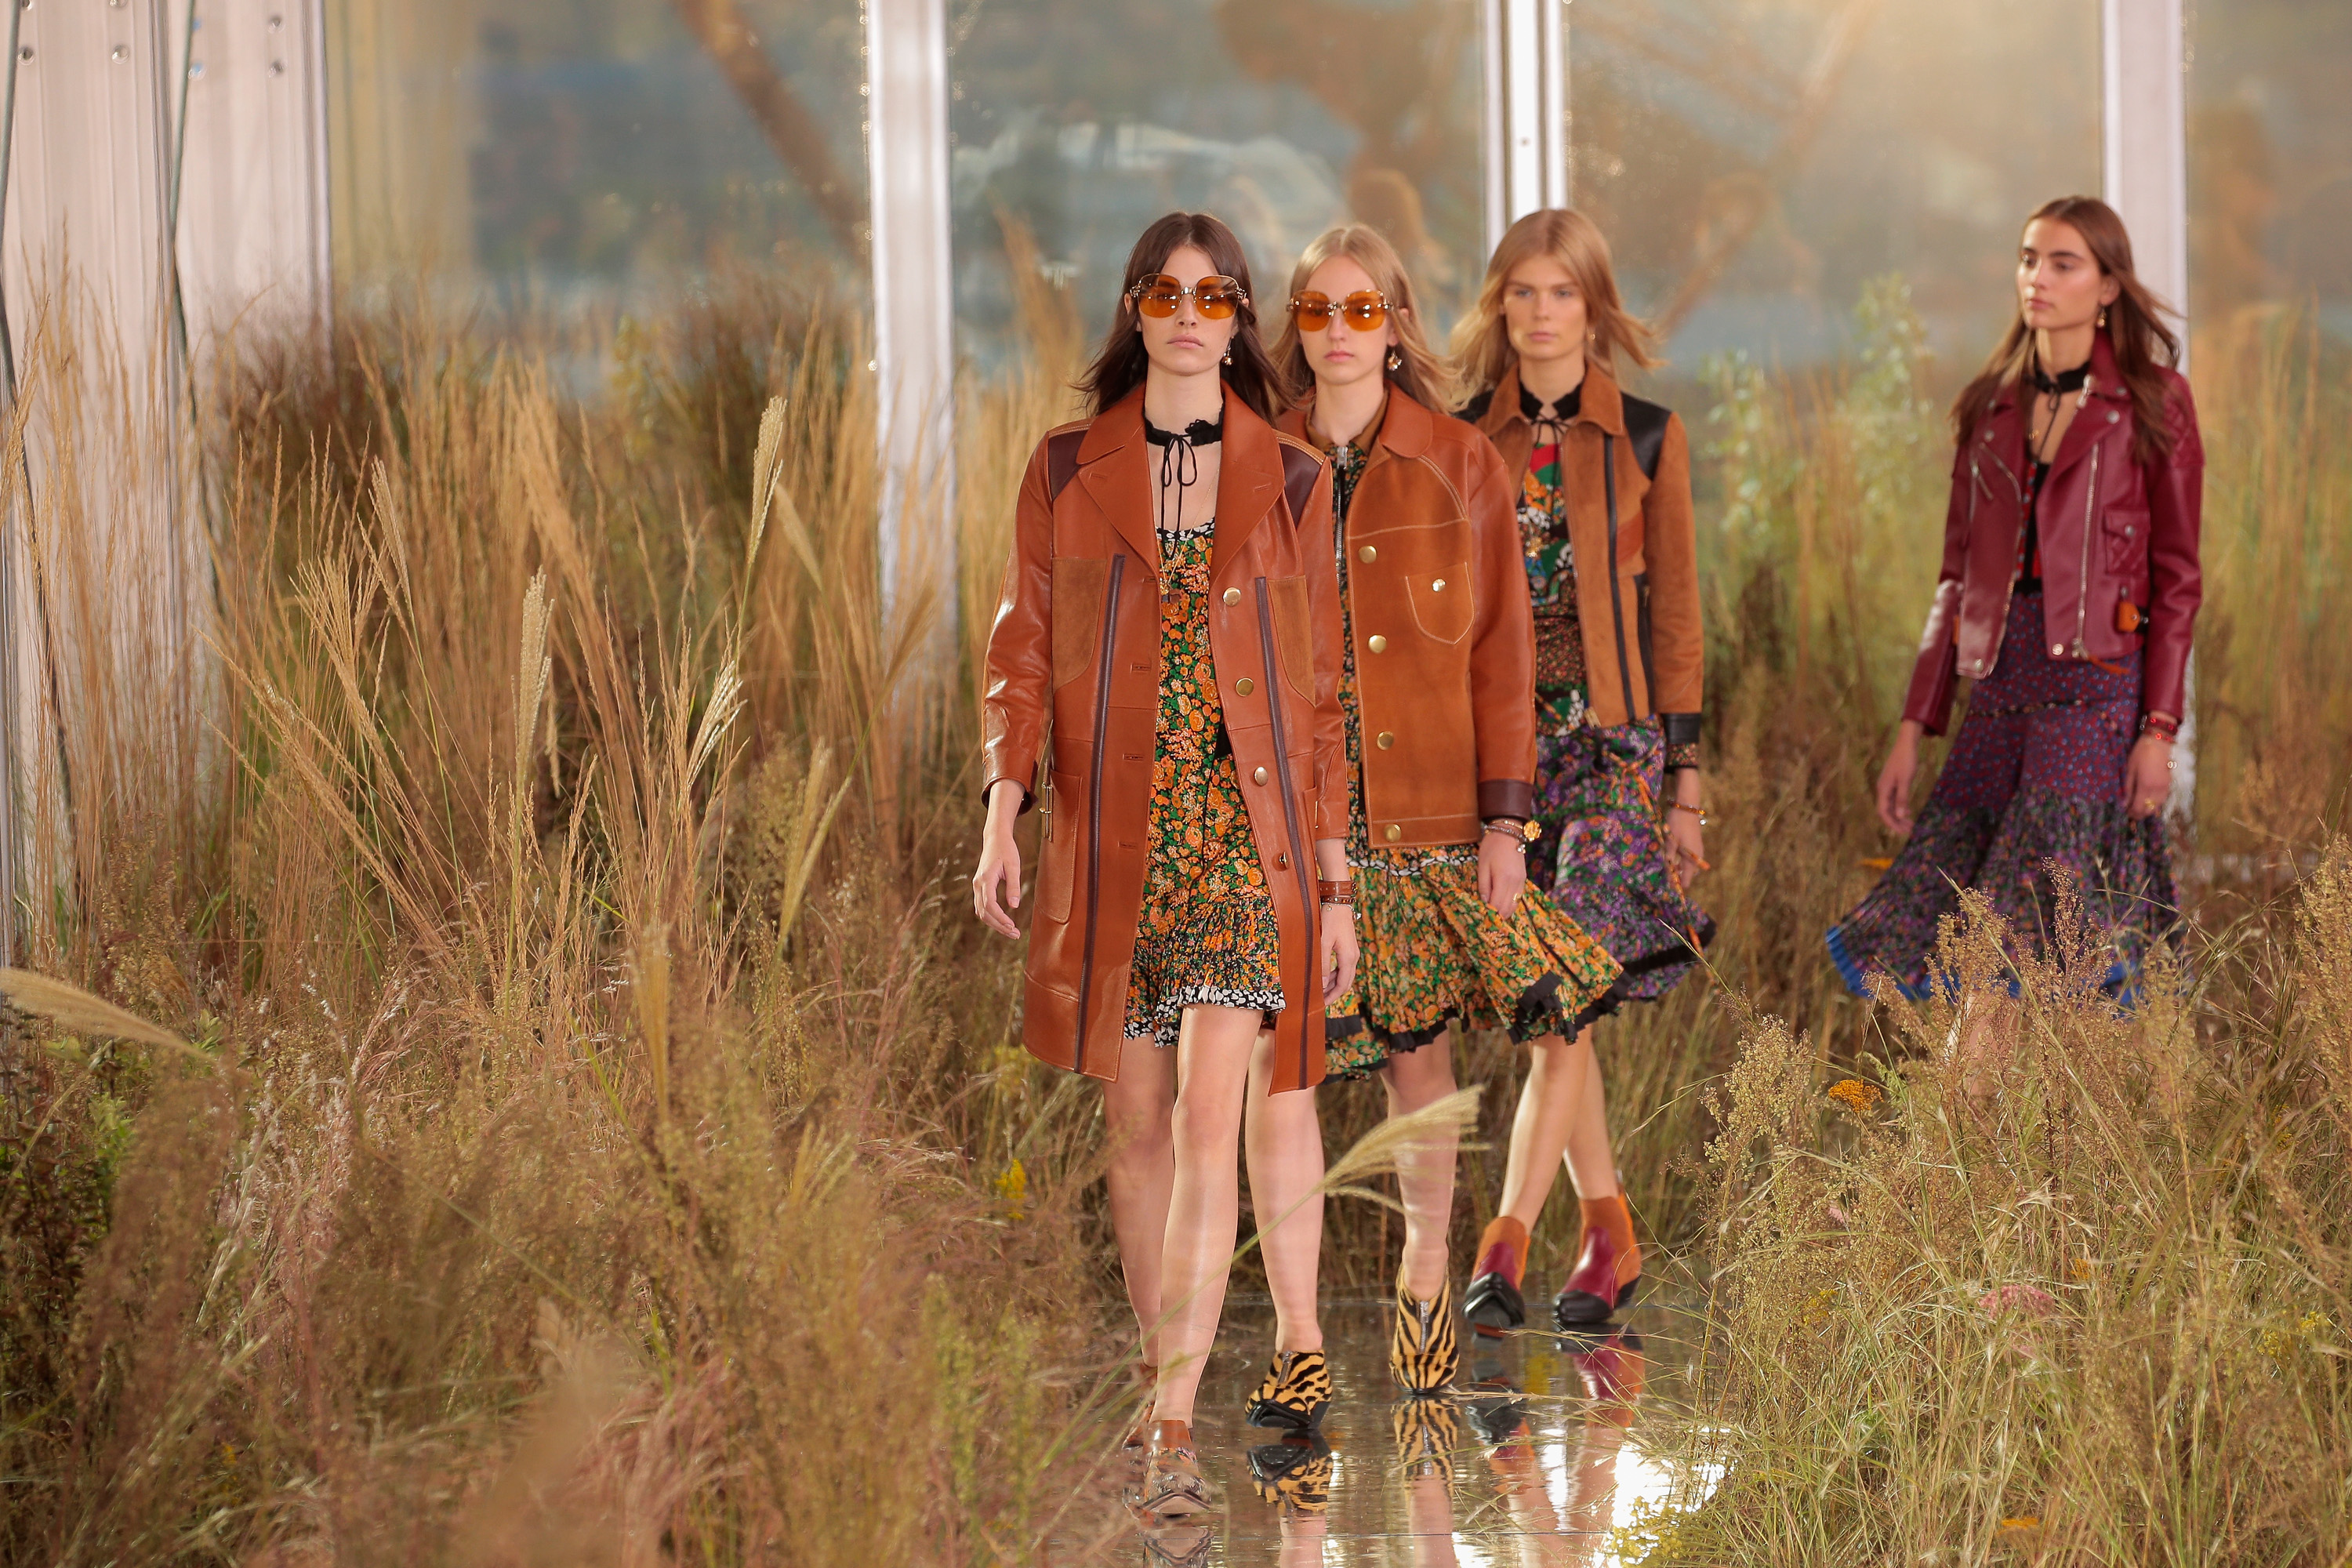 Models walk the runway at the Coach Women's Spring 2016 fashion show during New York Fashion Week at The Highline on September 15, 2015 in New York City.